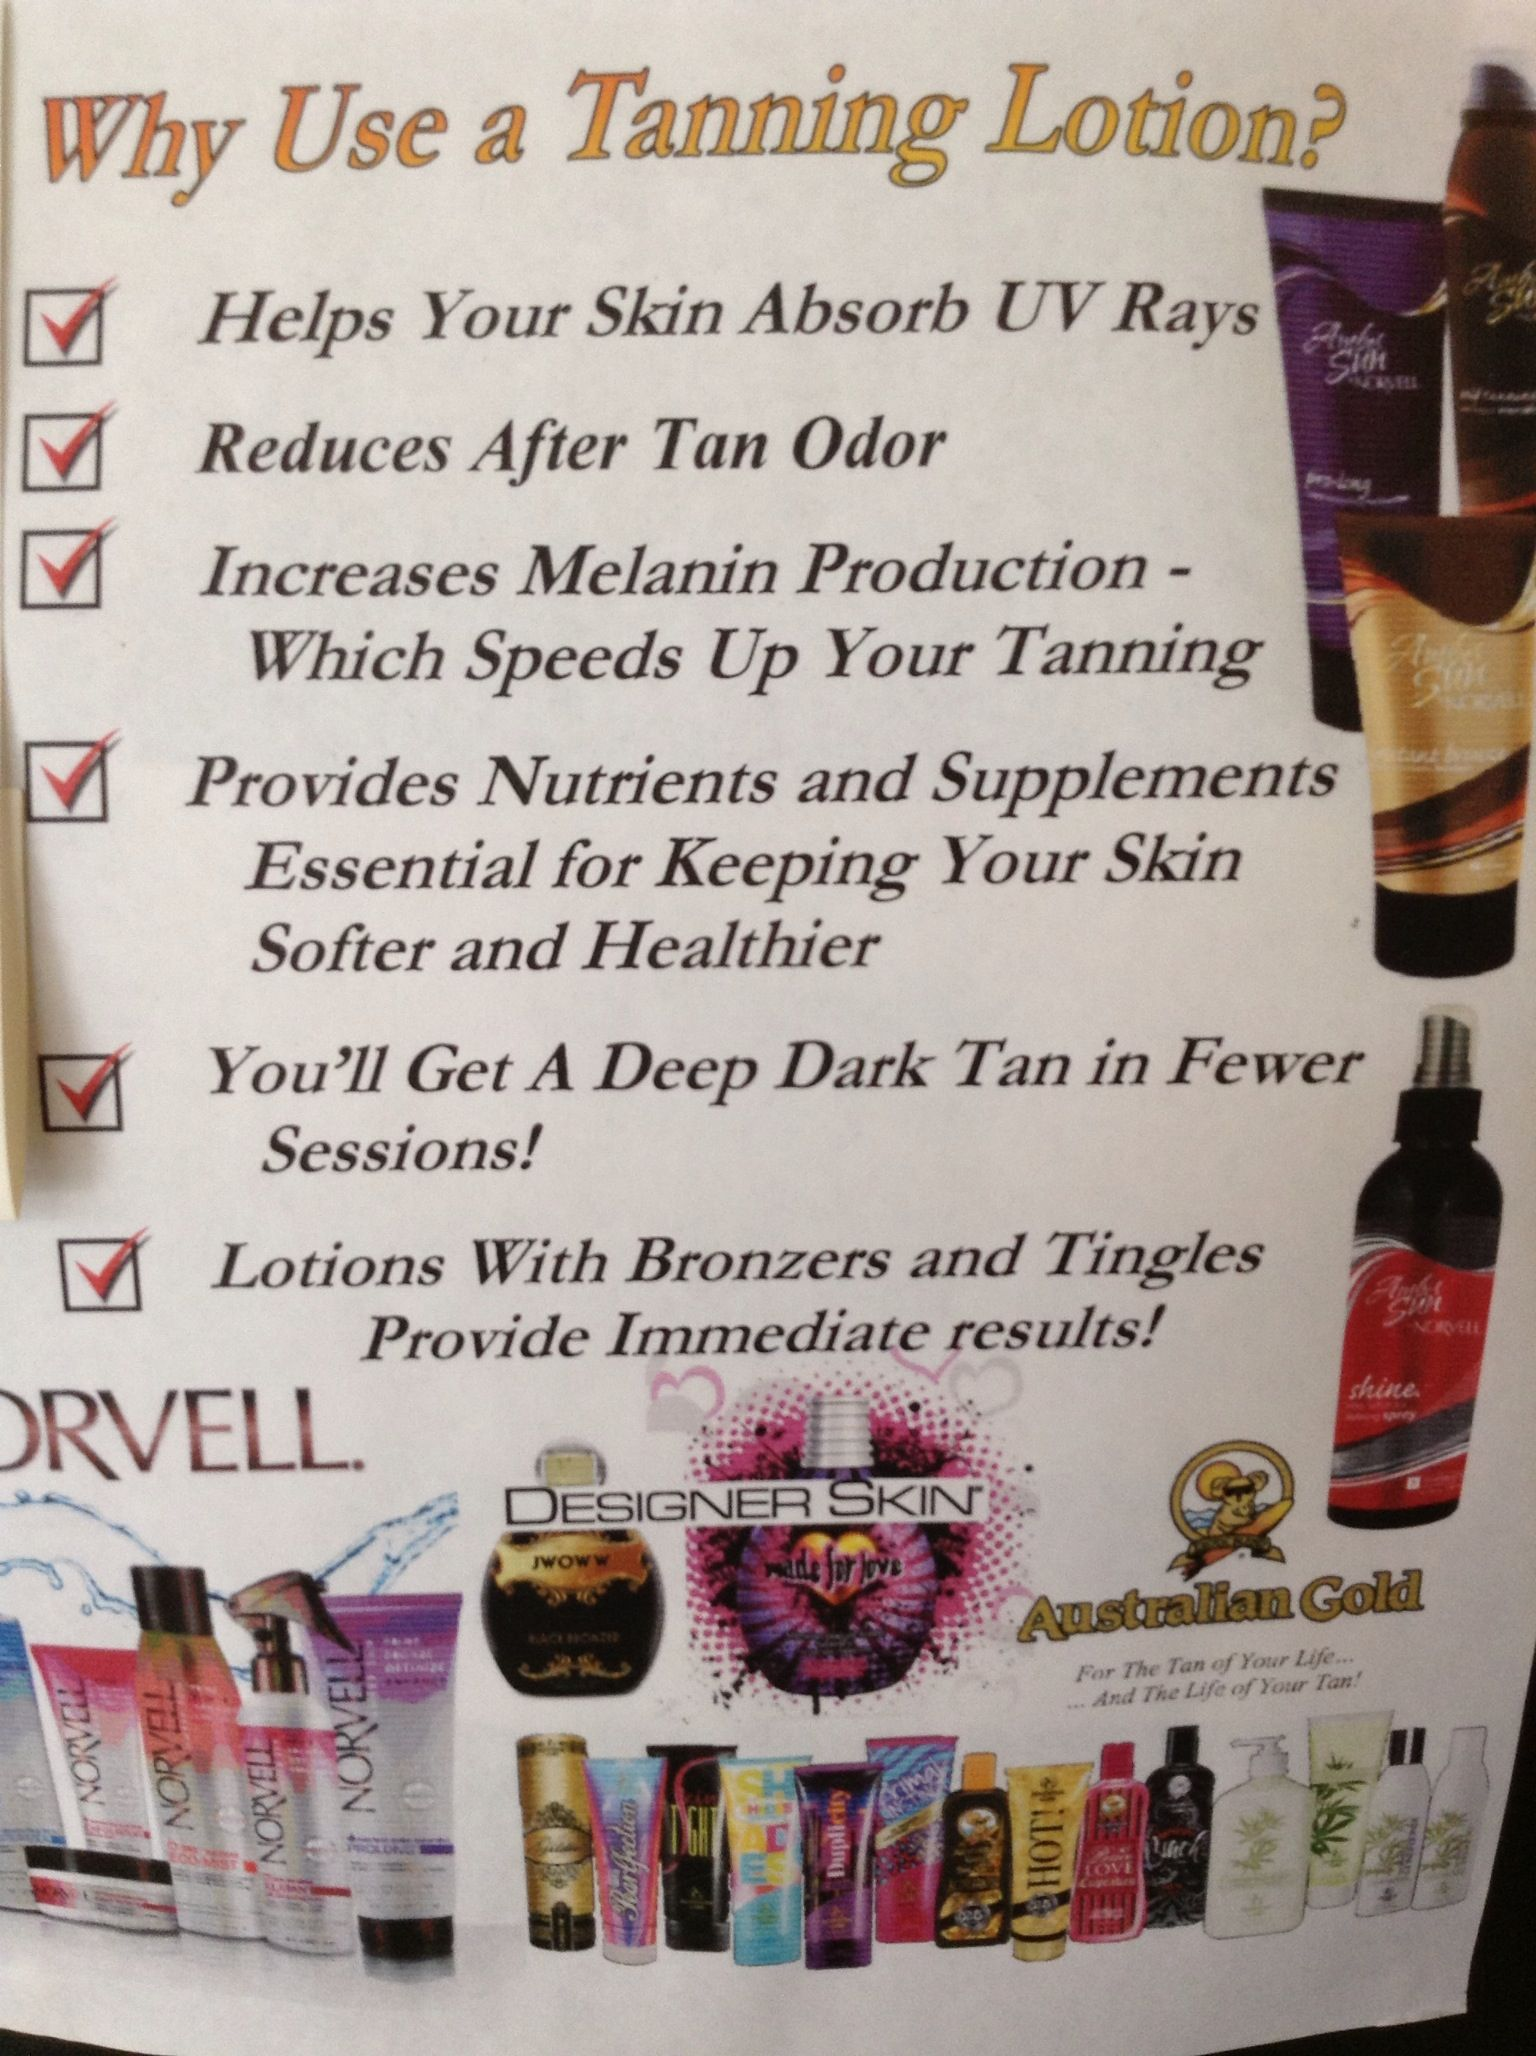 Why you should use a tanning lotion Tanning lotion